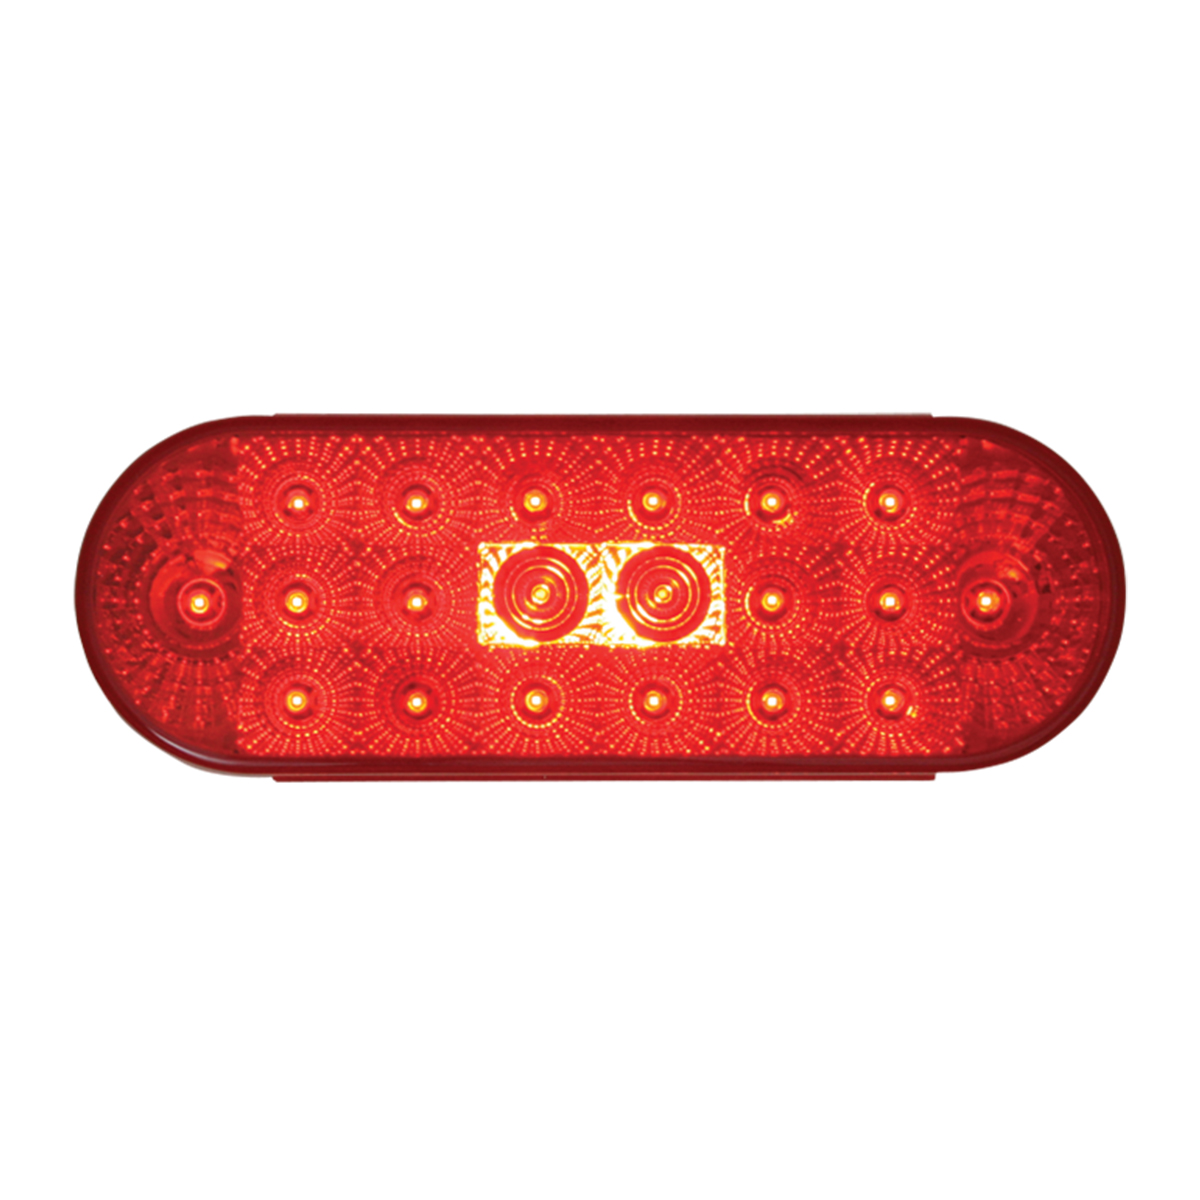 77053 Oval Spyder LED Light in Red/Red